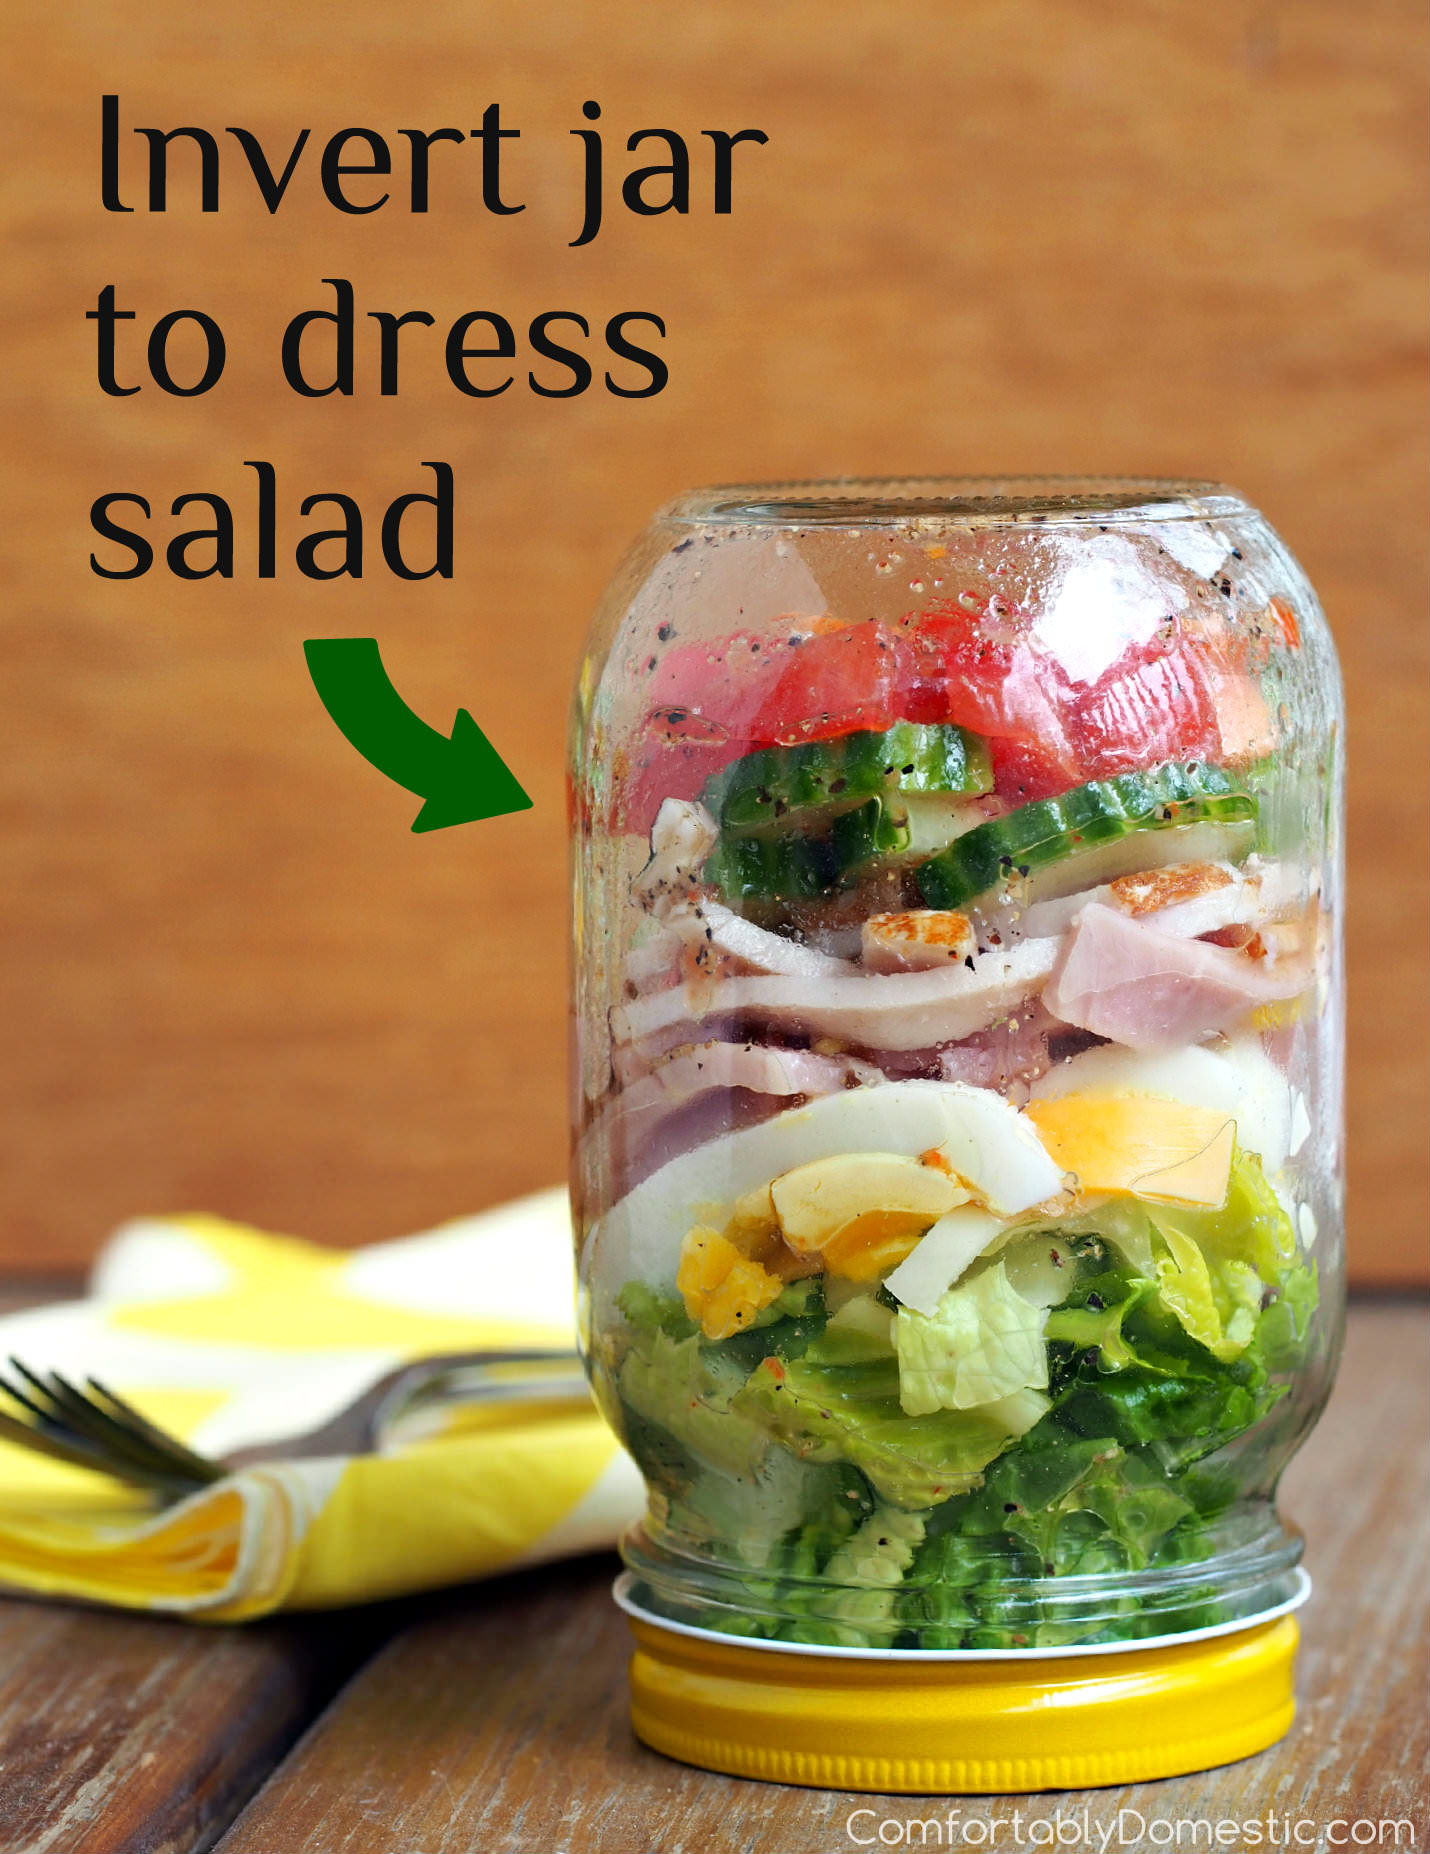 Chef Salad in a Jar - a great make-ahead lunch idea! | ComfortablyDomestic.com